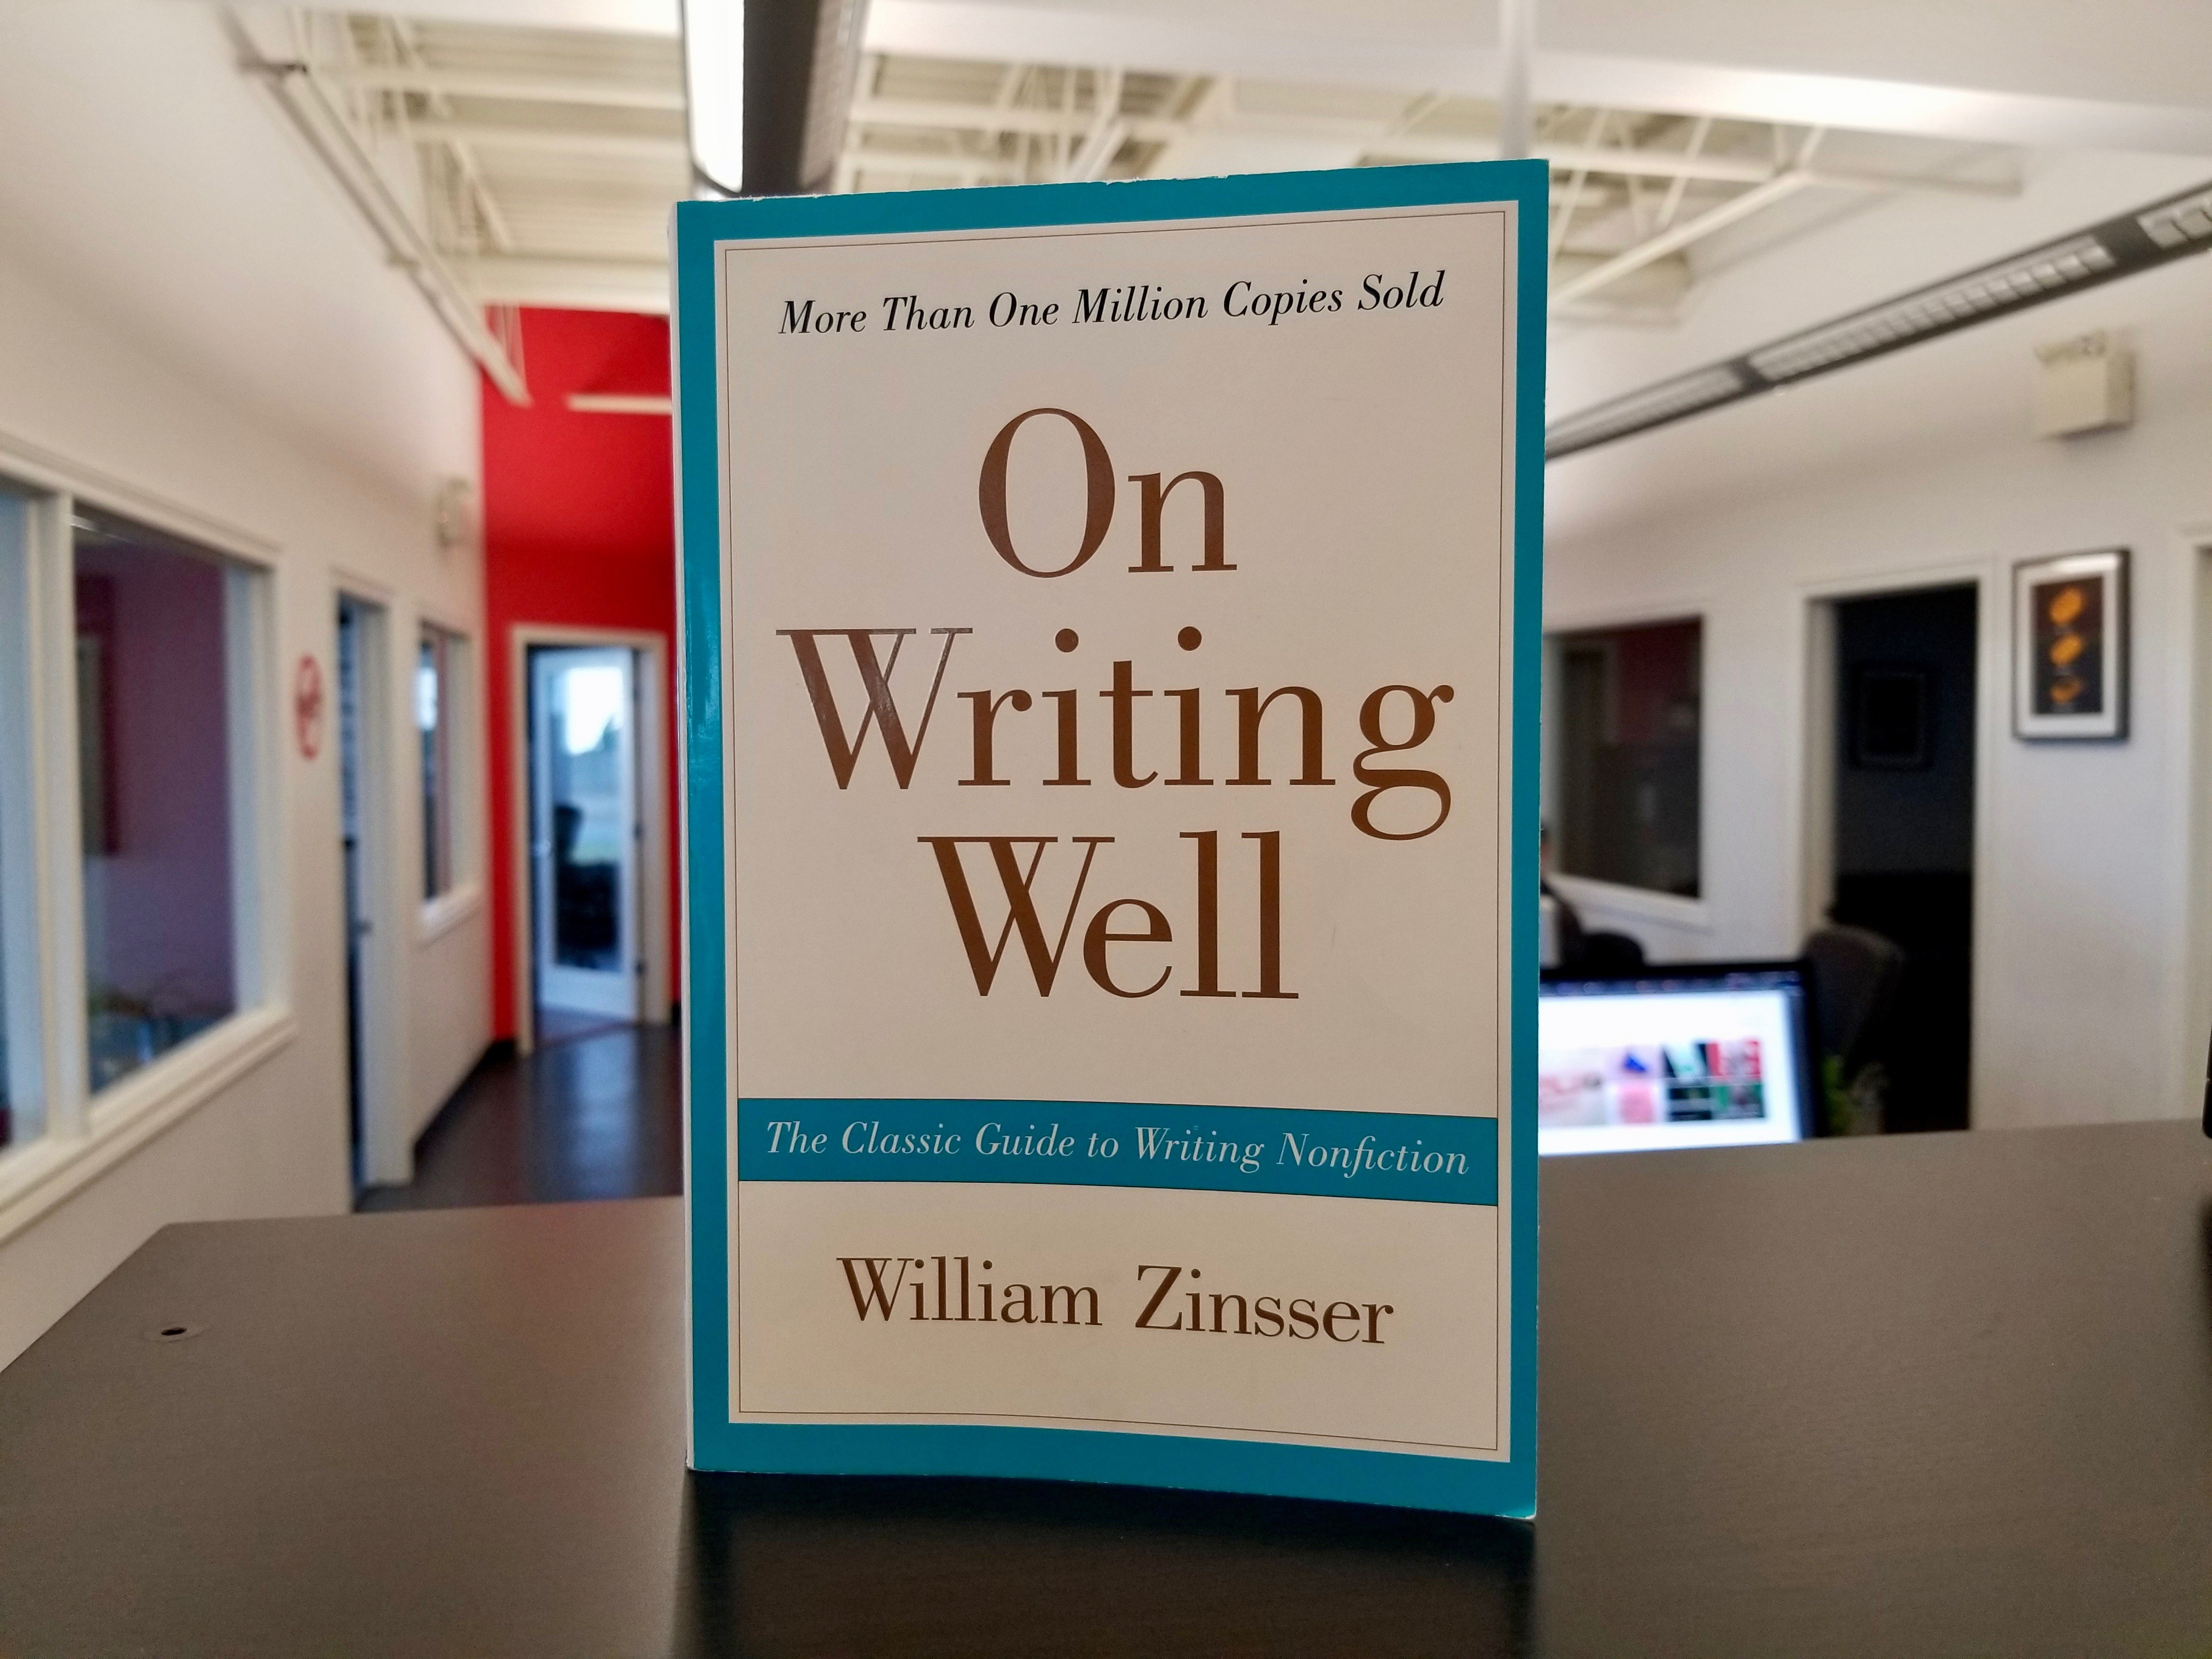 William's Zinsser's bestselling book, On Writing Well.